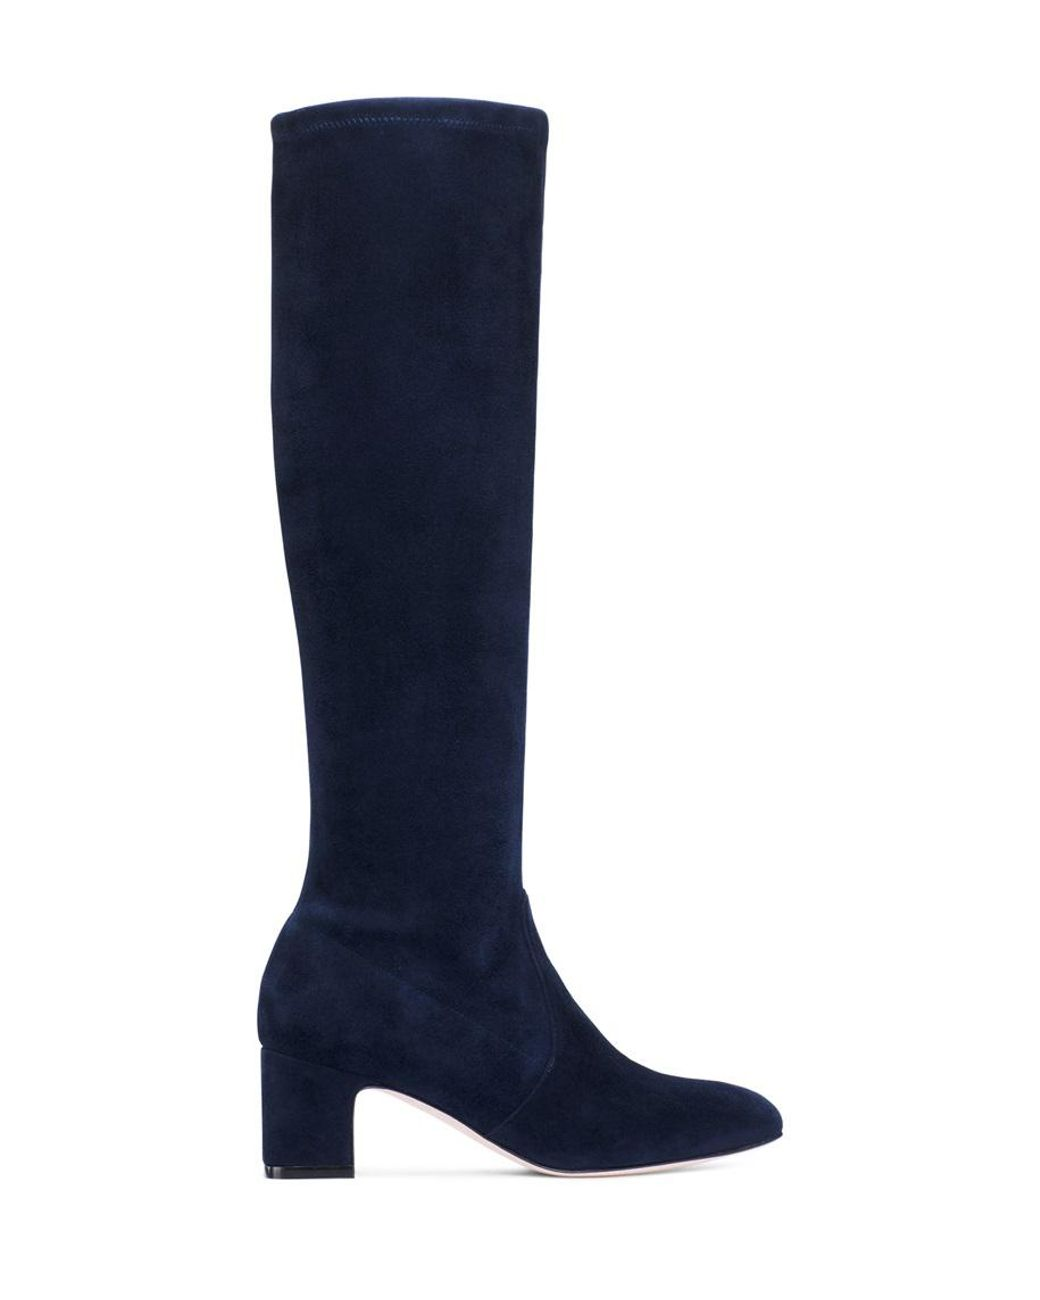 7755e8472c Stuart Weitzman The Milla 60 Boot in Blue - Lyst